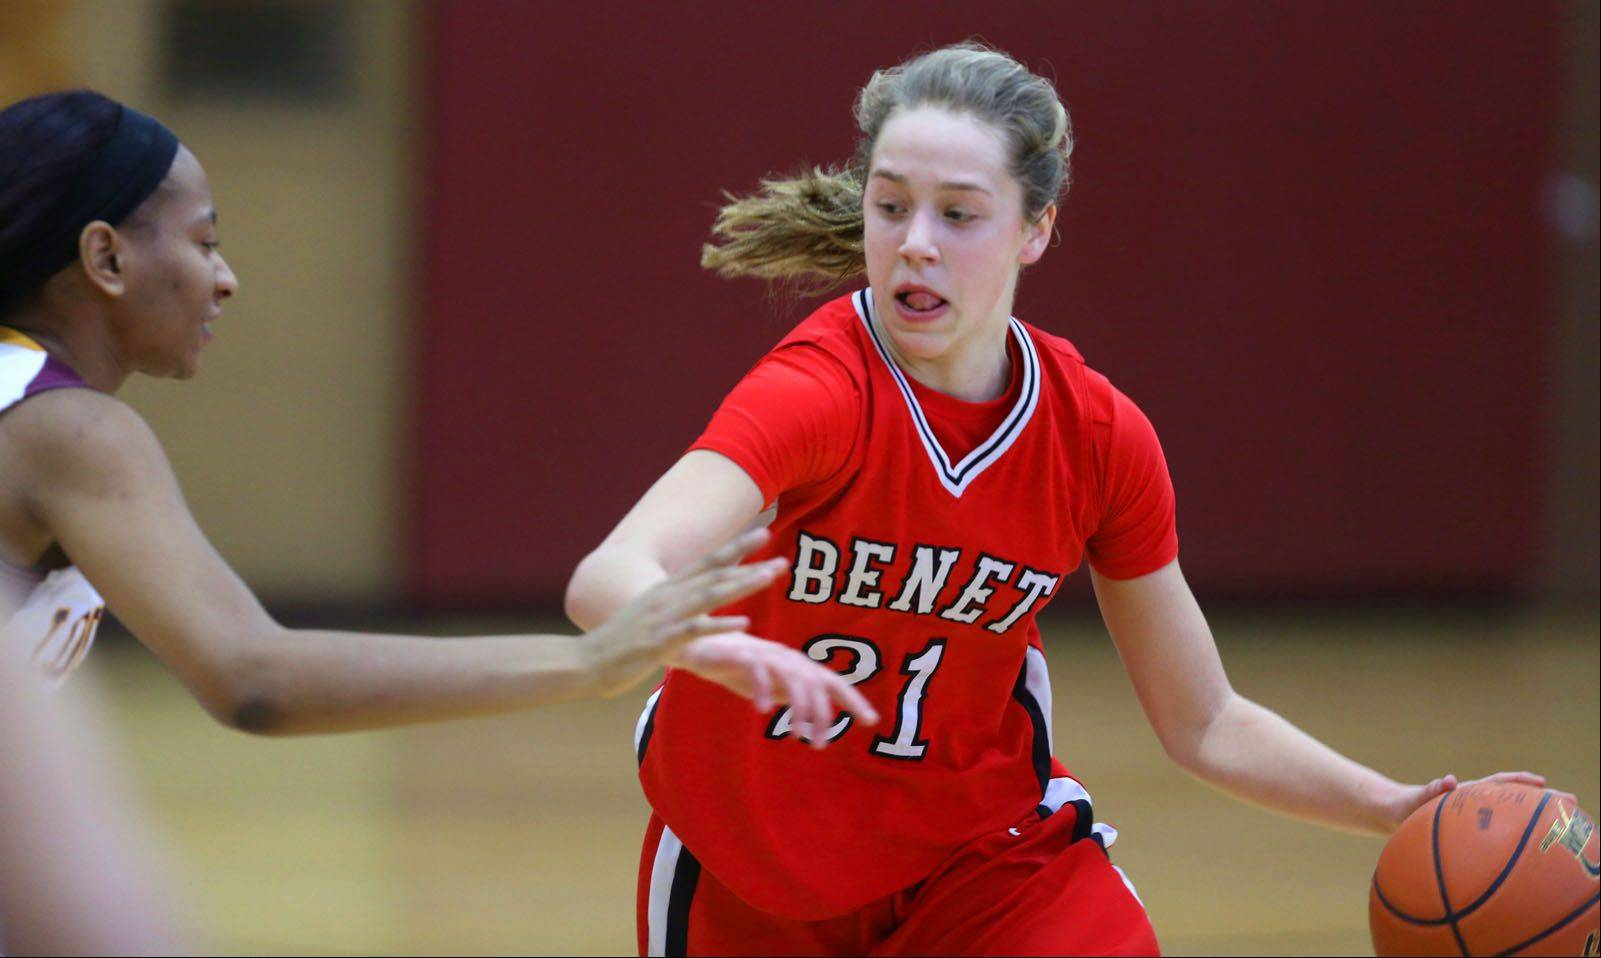 Images from the Benet vs. Lockport girls basketball game on Saturday, Jan. 4, 2014.